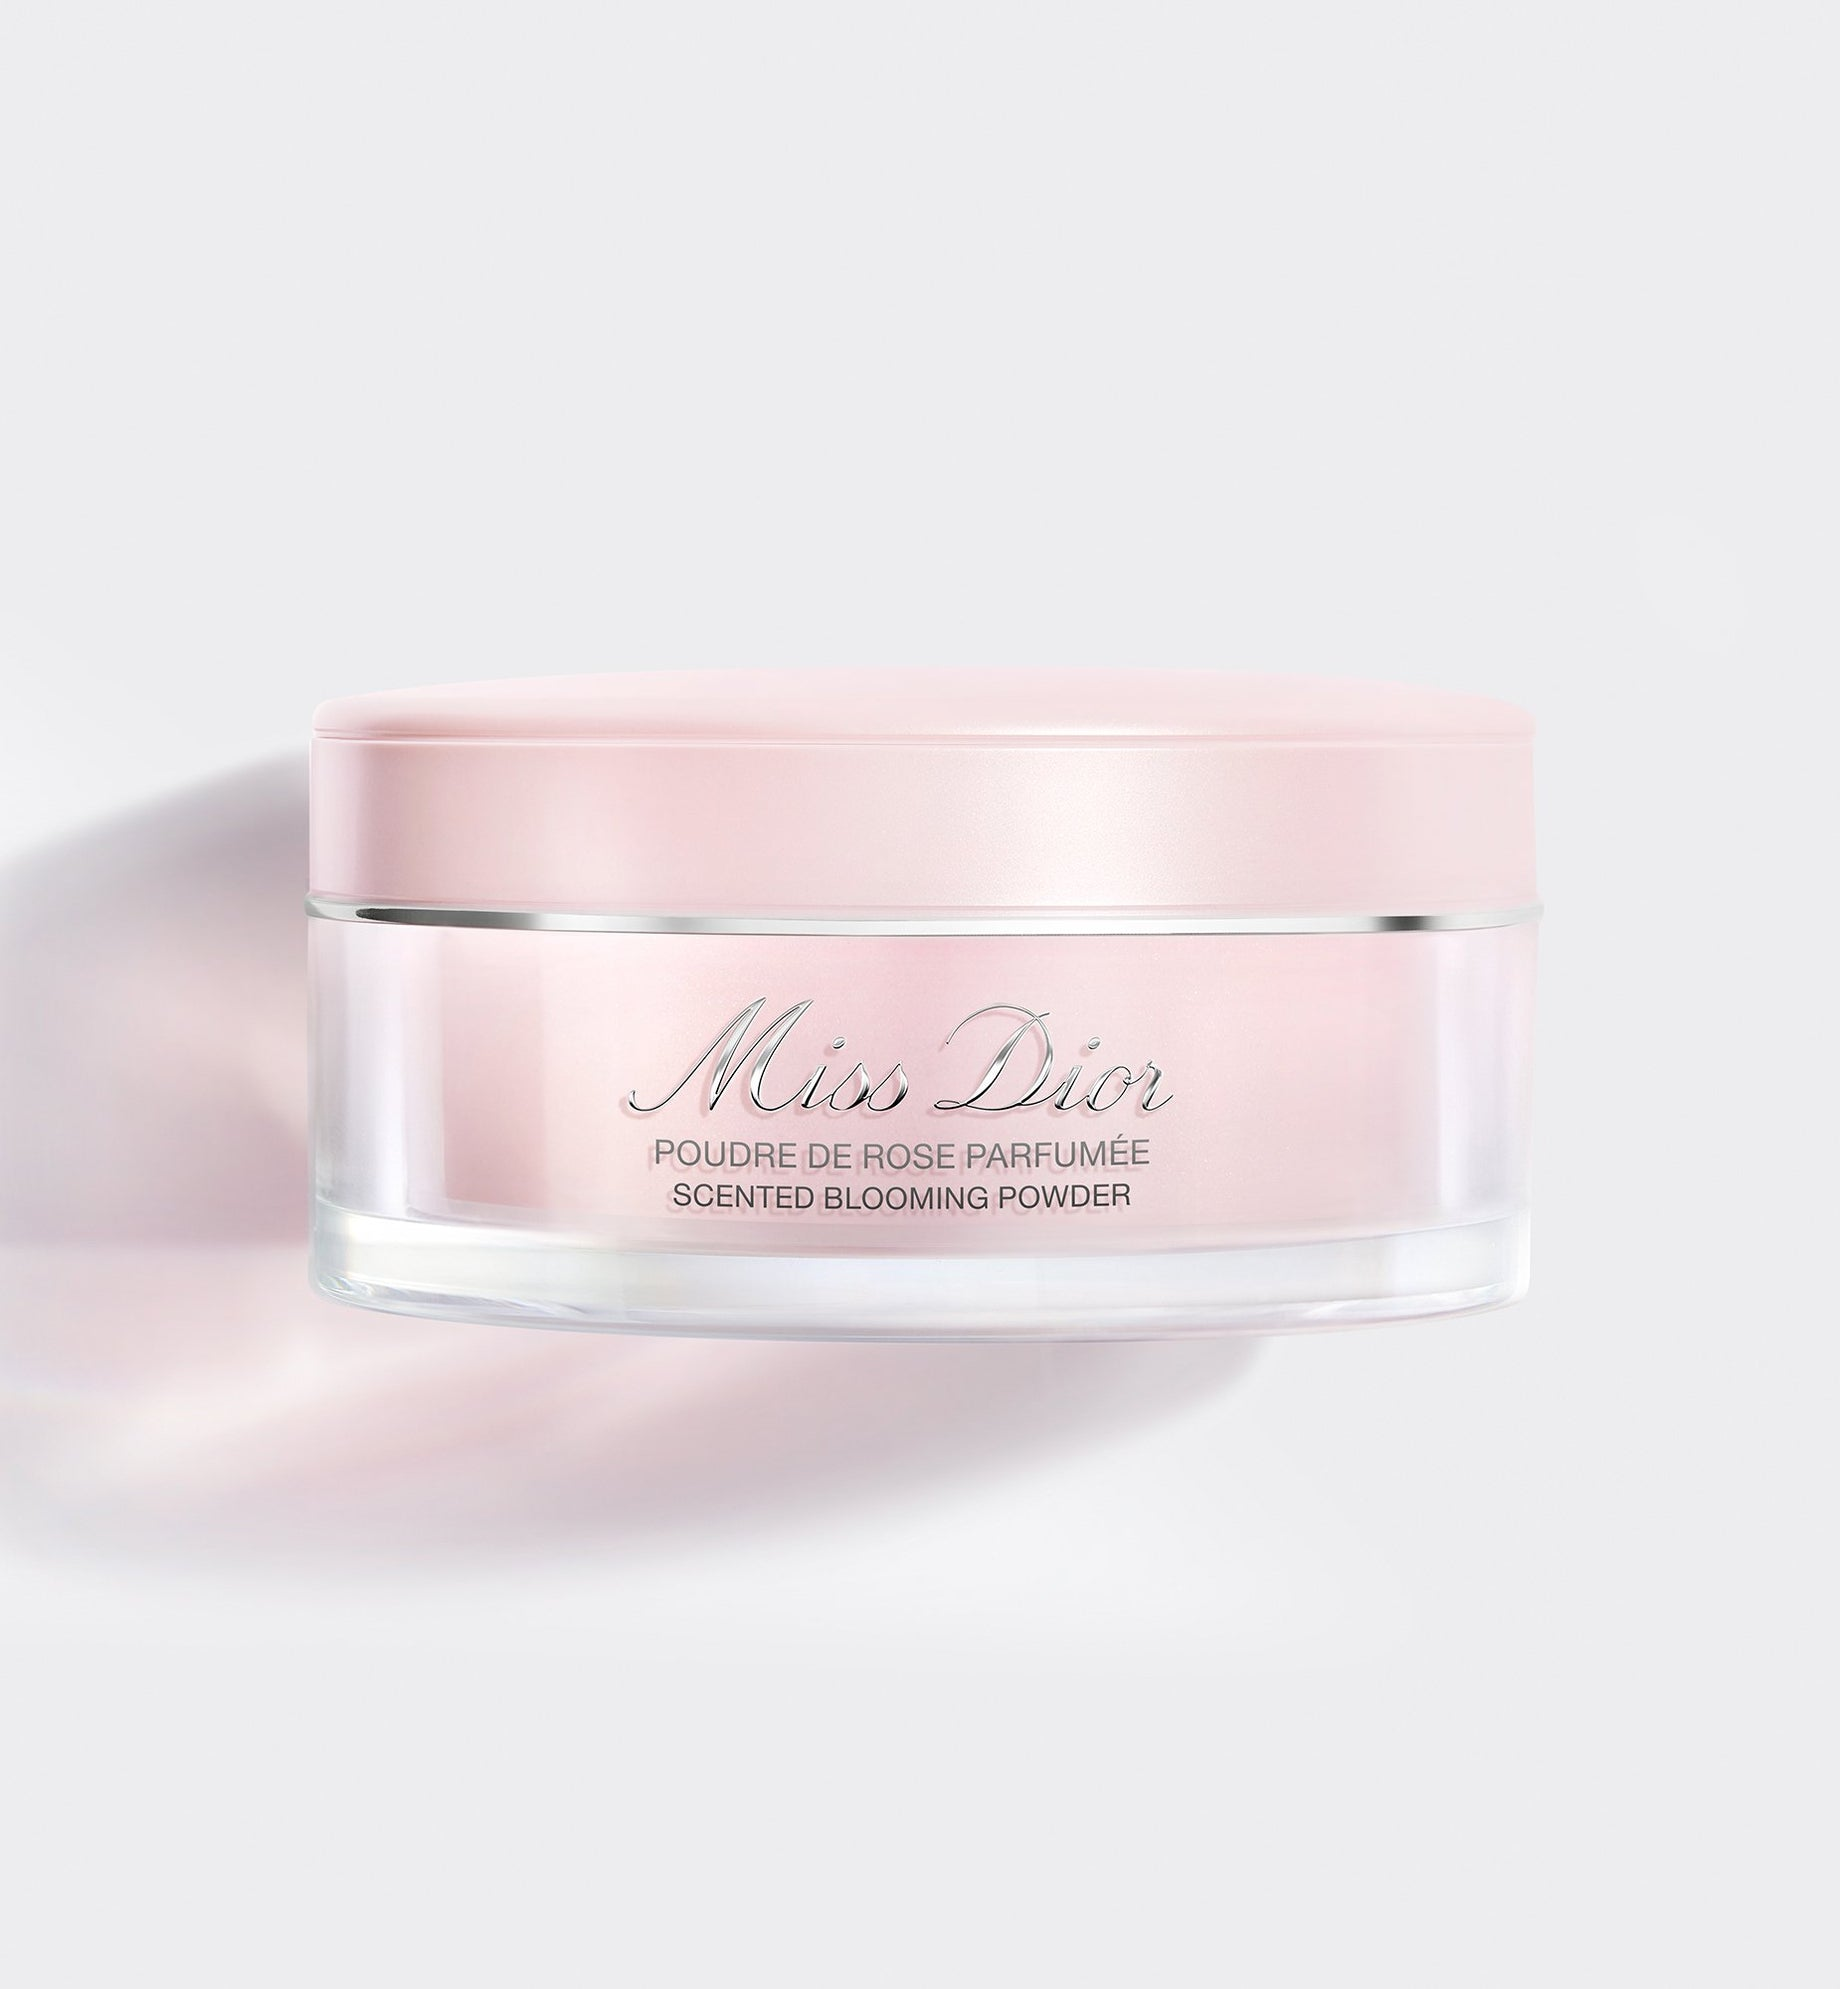 MISS DIOR SCENTED BLOOMING POWDER